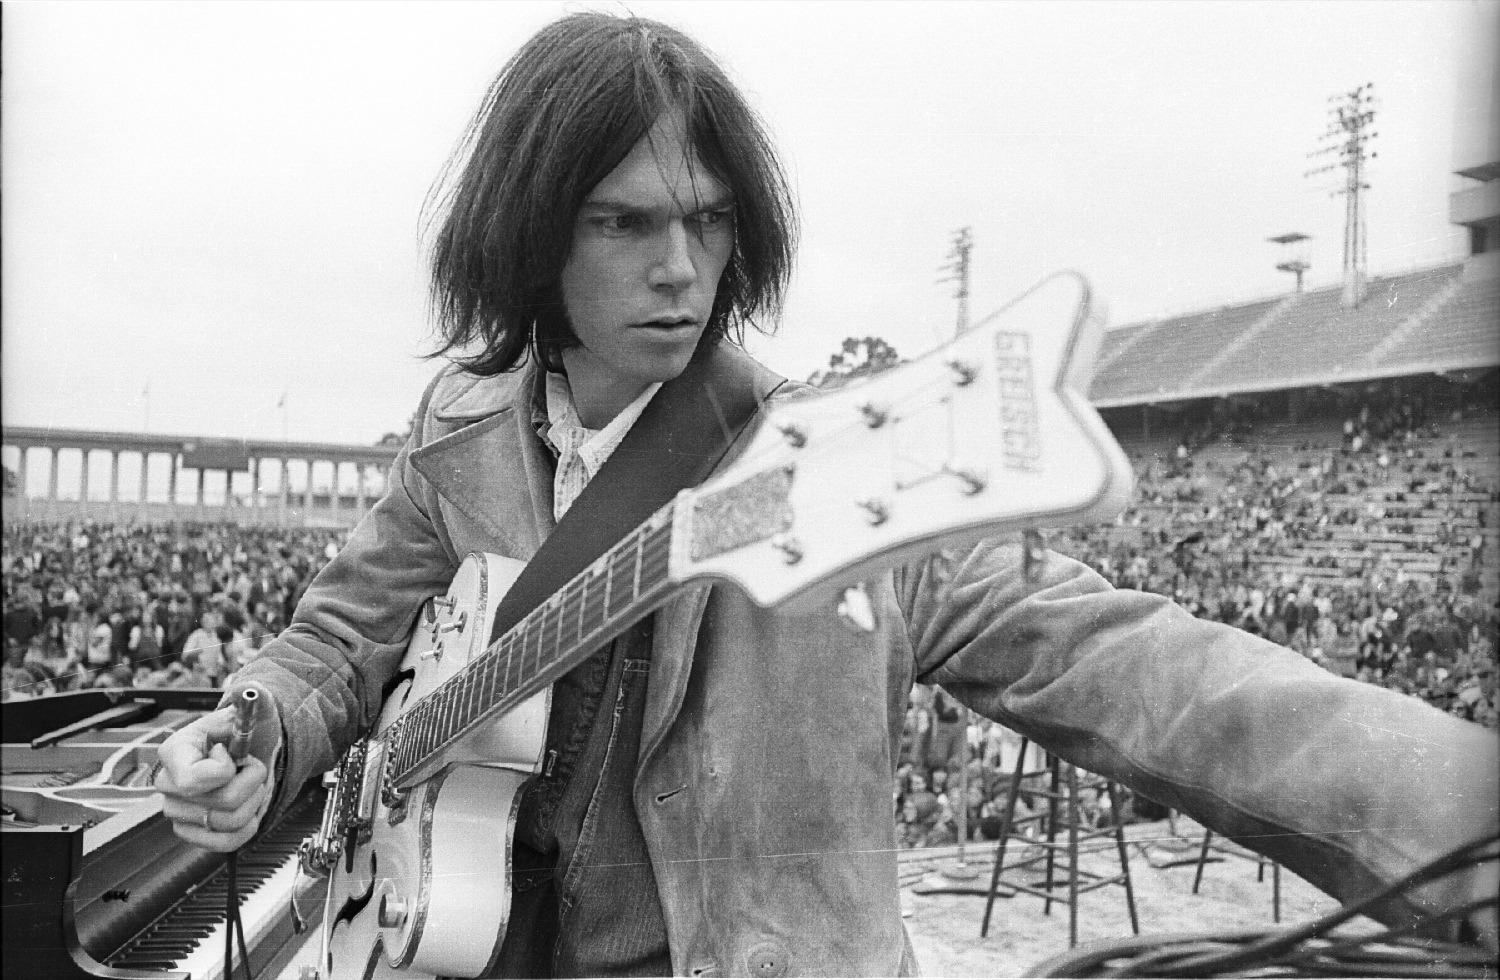 Neil Young: Come a little bit closer, hear what I have to say